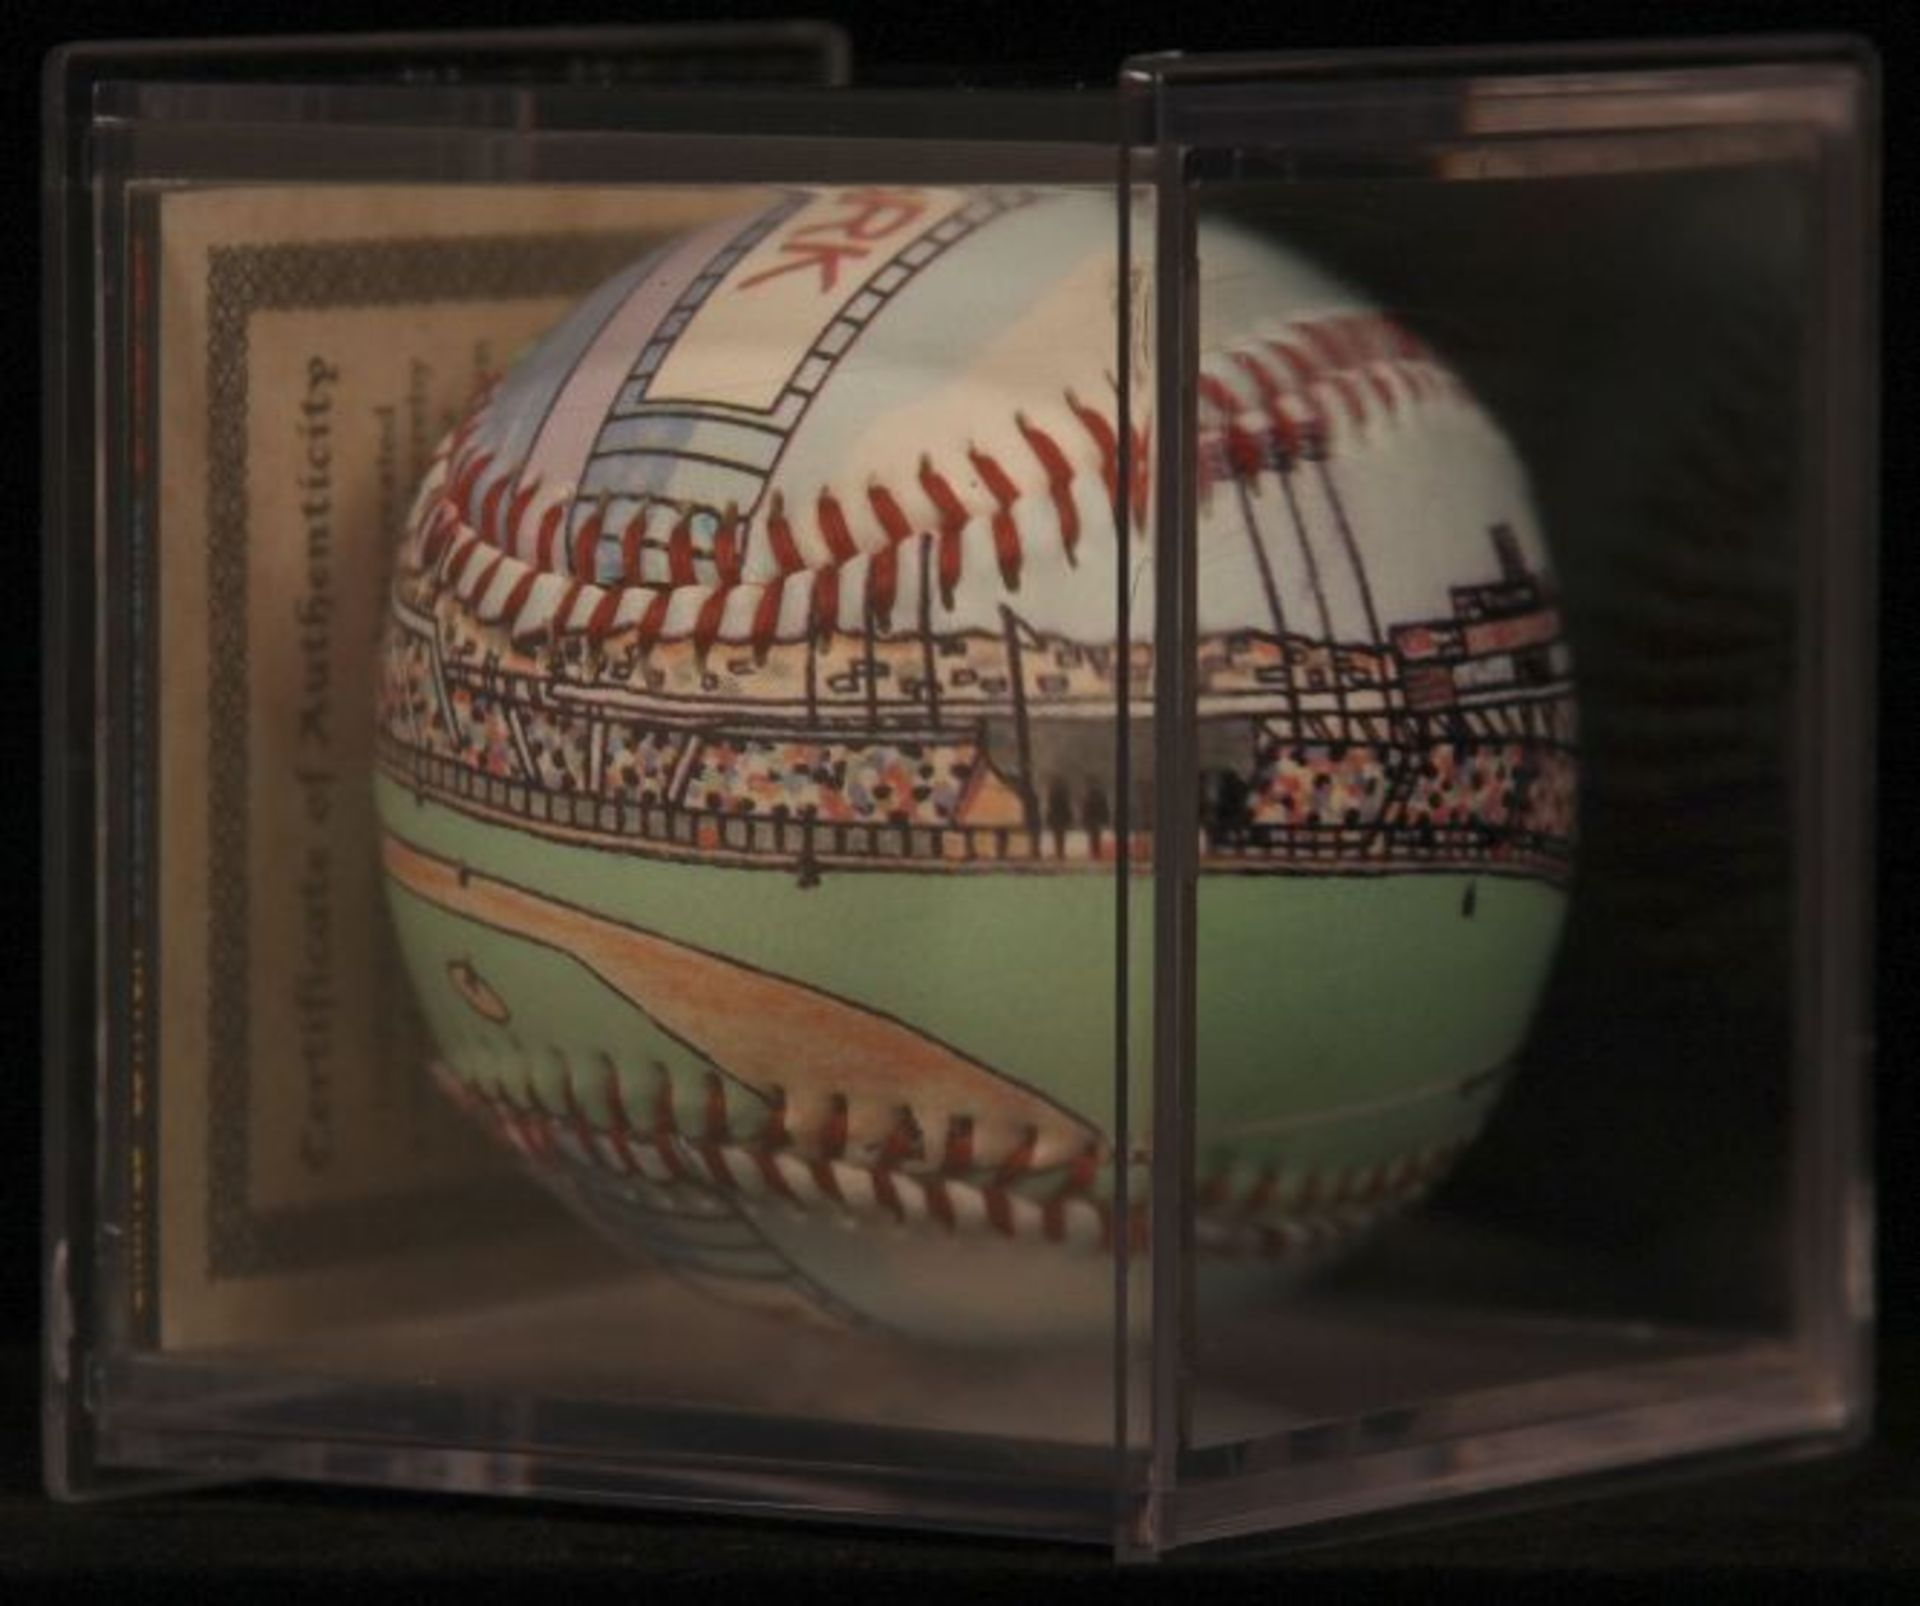 "Unforgettaball! ""Candlestick Park"" Collectable Baseball - Image 5 of 6"